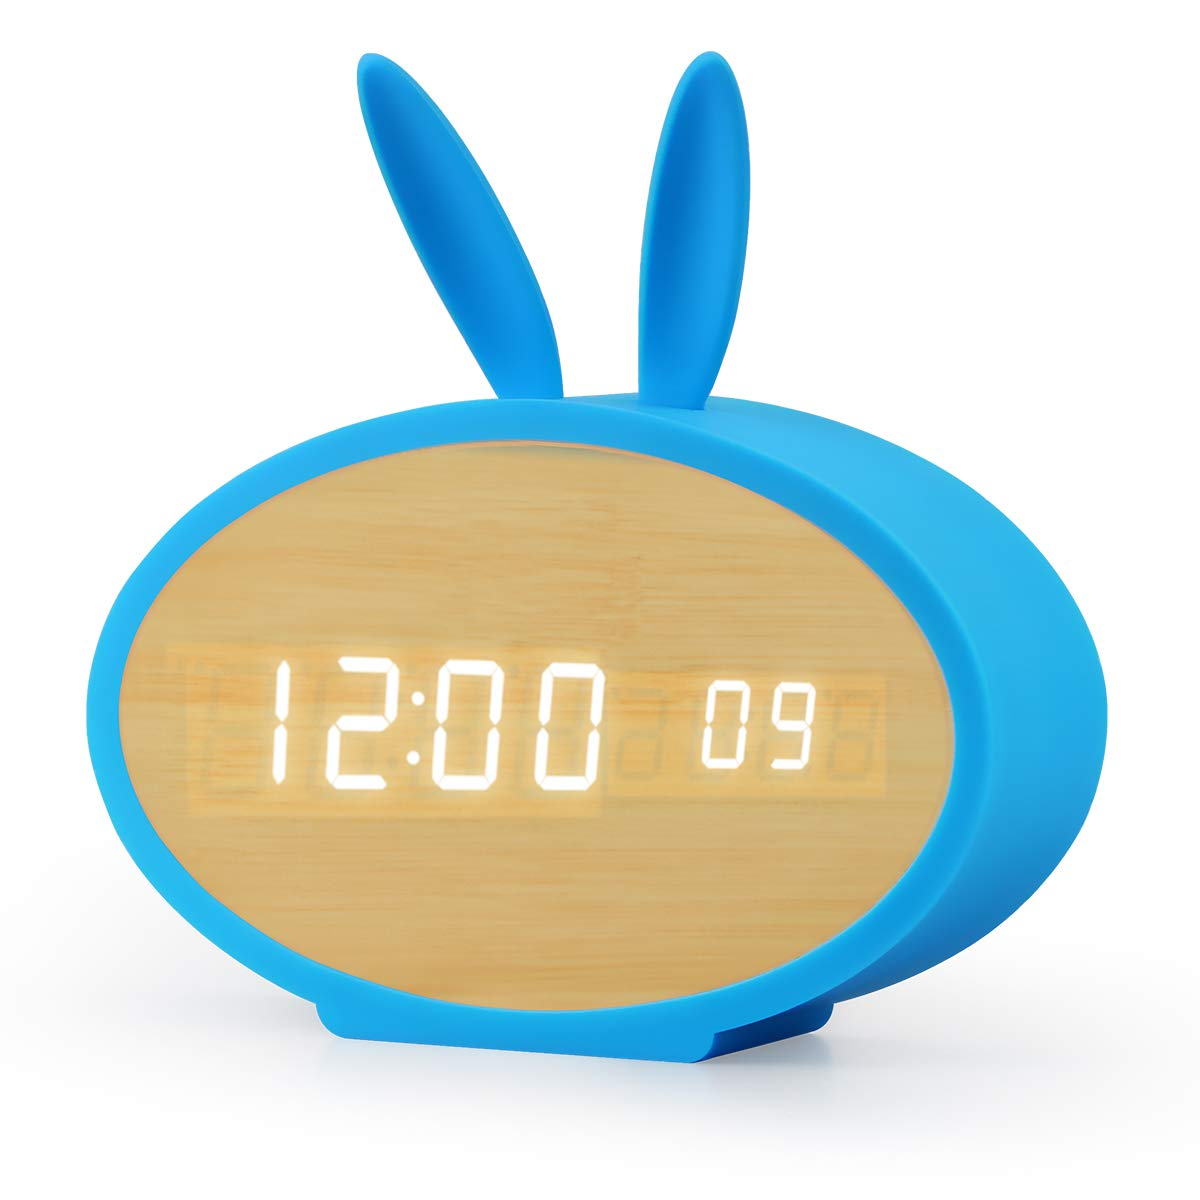 Aitey Alarm Clock, LED Digital Clock for Kids with 3 Alarm and Sound Control, Wood Rabbit Clock for Bedroom, Kids' Room Décor, USB/Battery Powered (Blue)